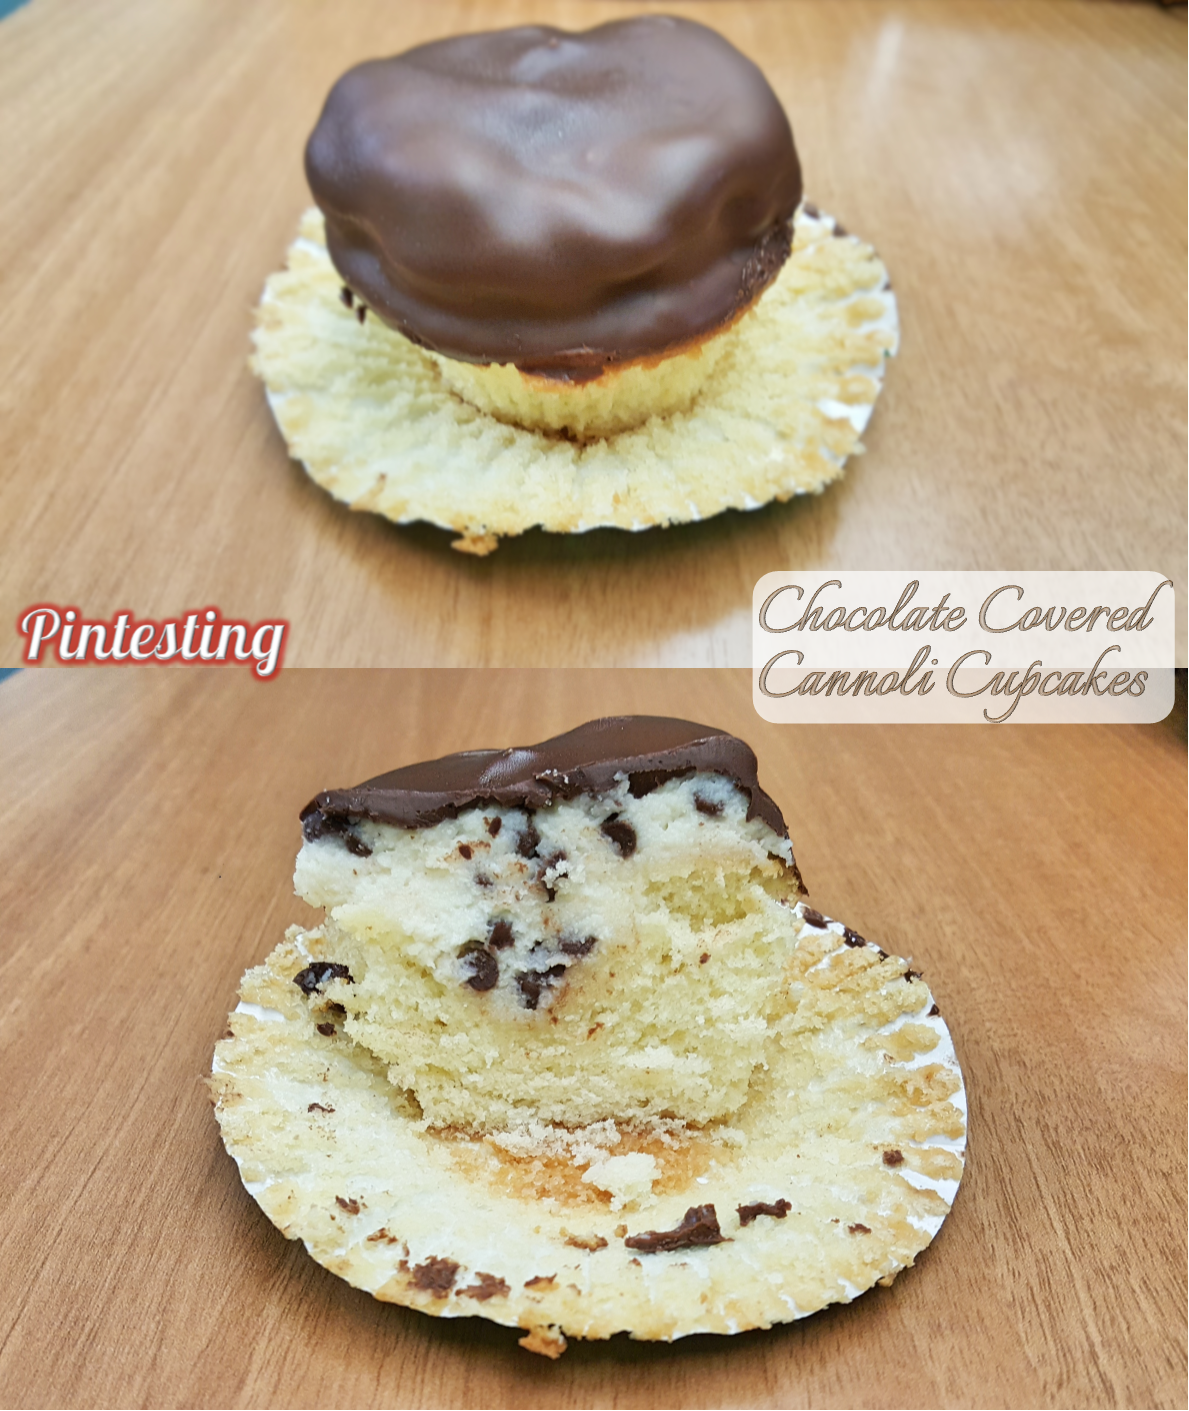 Pintesting Chocolate Covered Cannoli Cupcakes